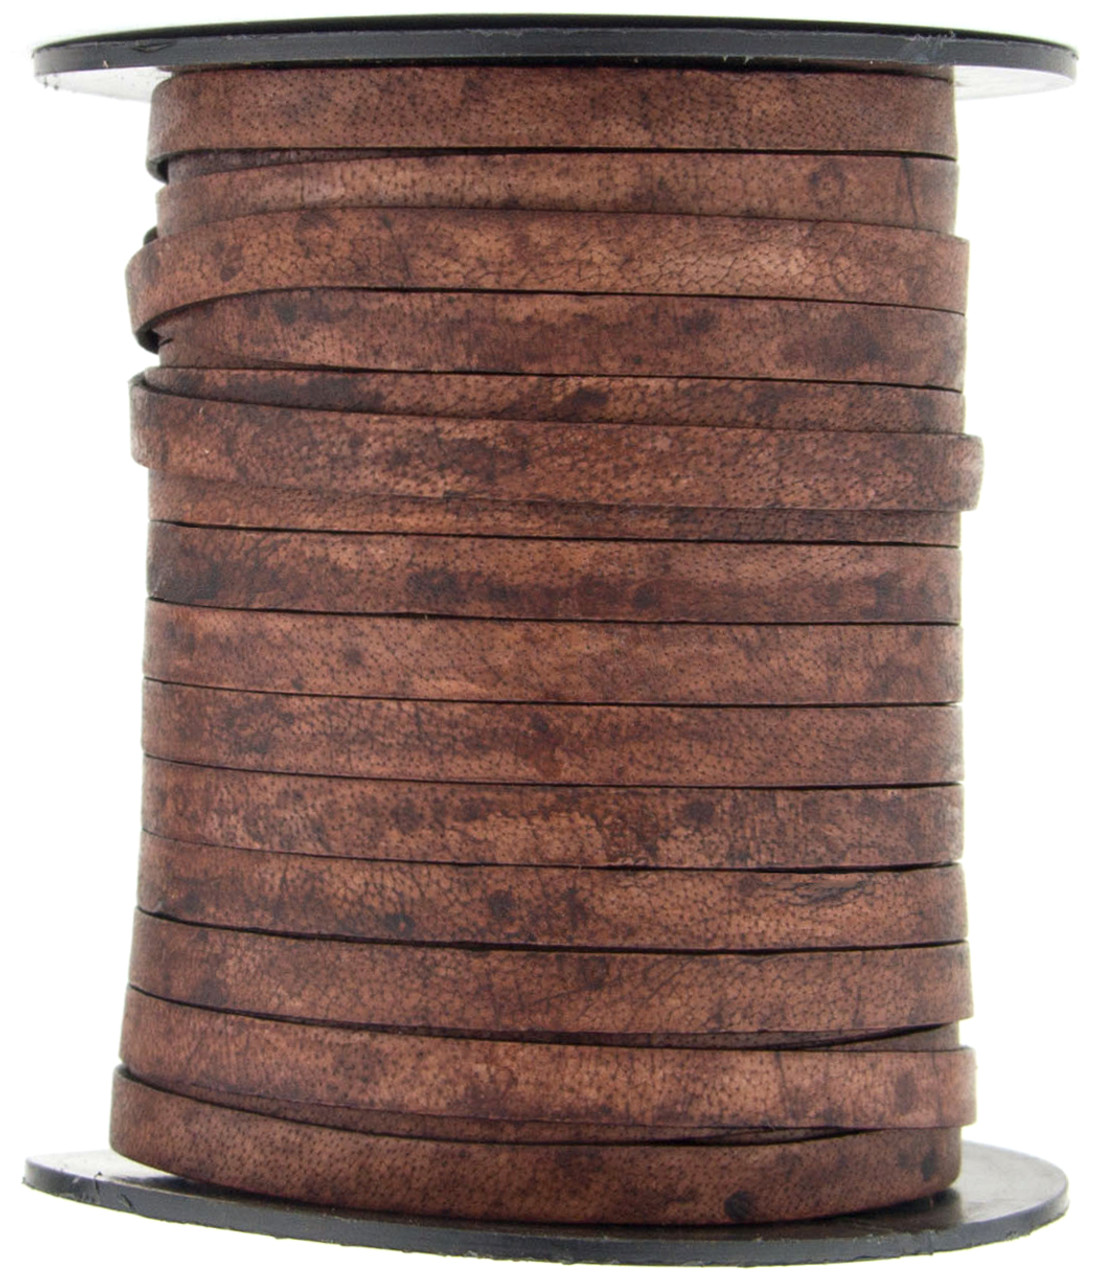 Antique Brown 1 Yard Xsotica-Flat Leather Cords 10.0 MM X 2.0 MM